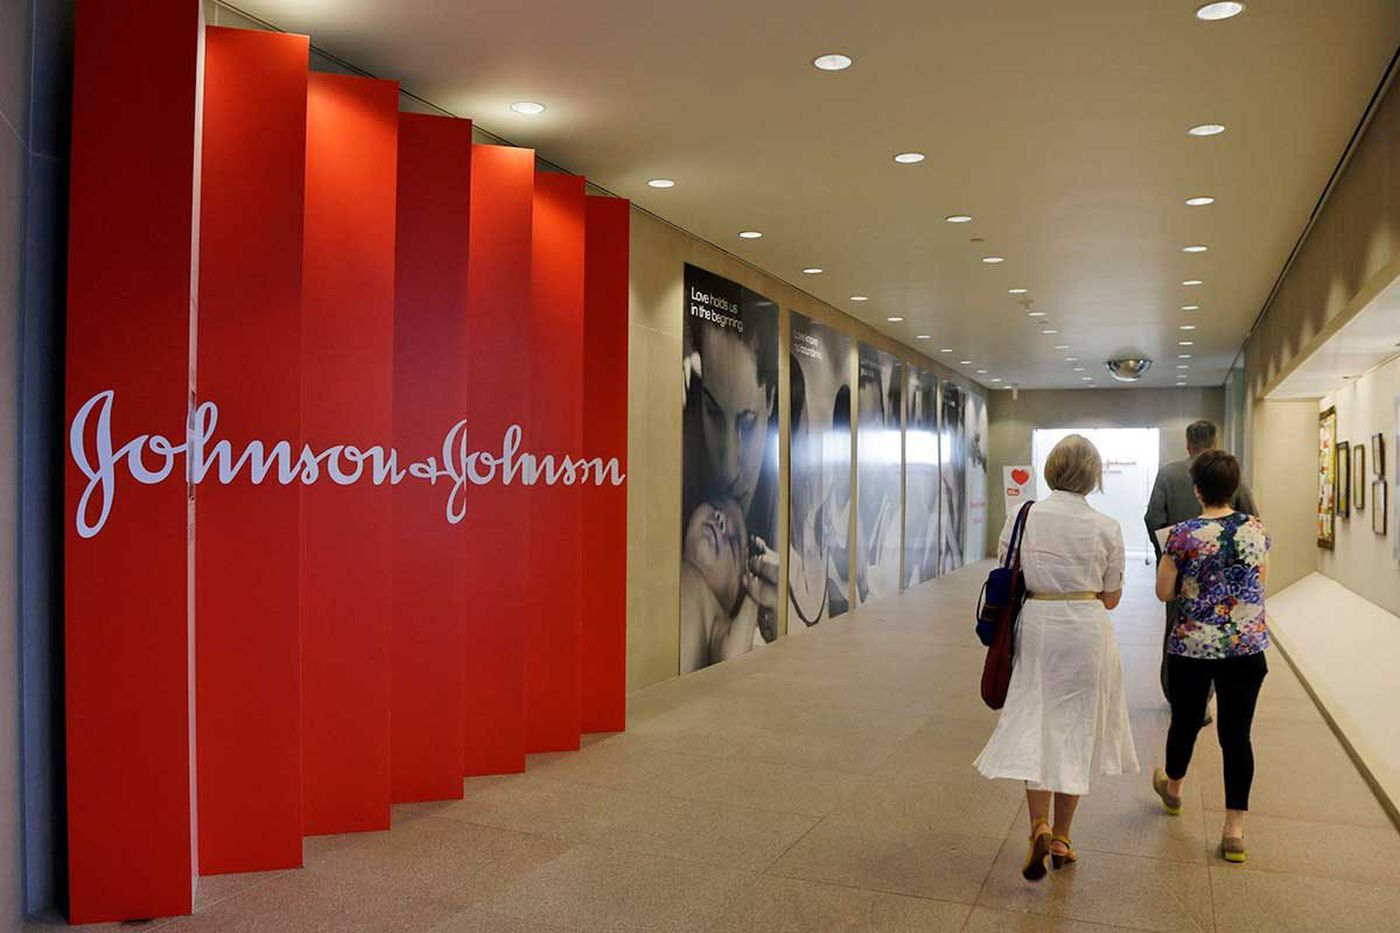 Johnson & Johnson ordered to pay $15M in vaginal mesh case